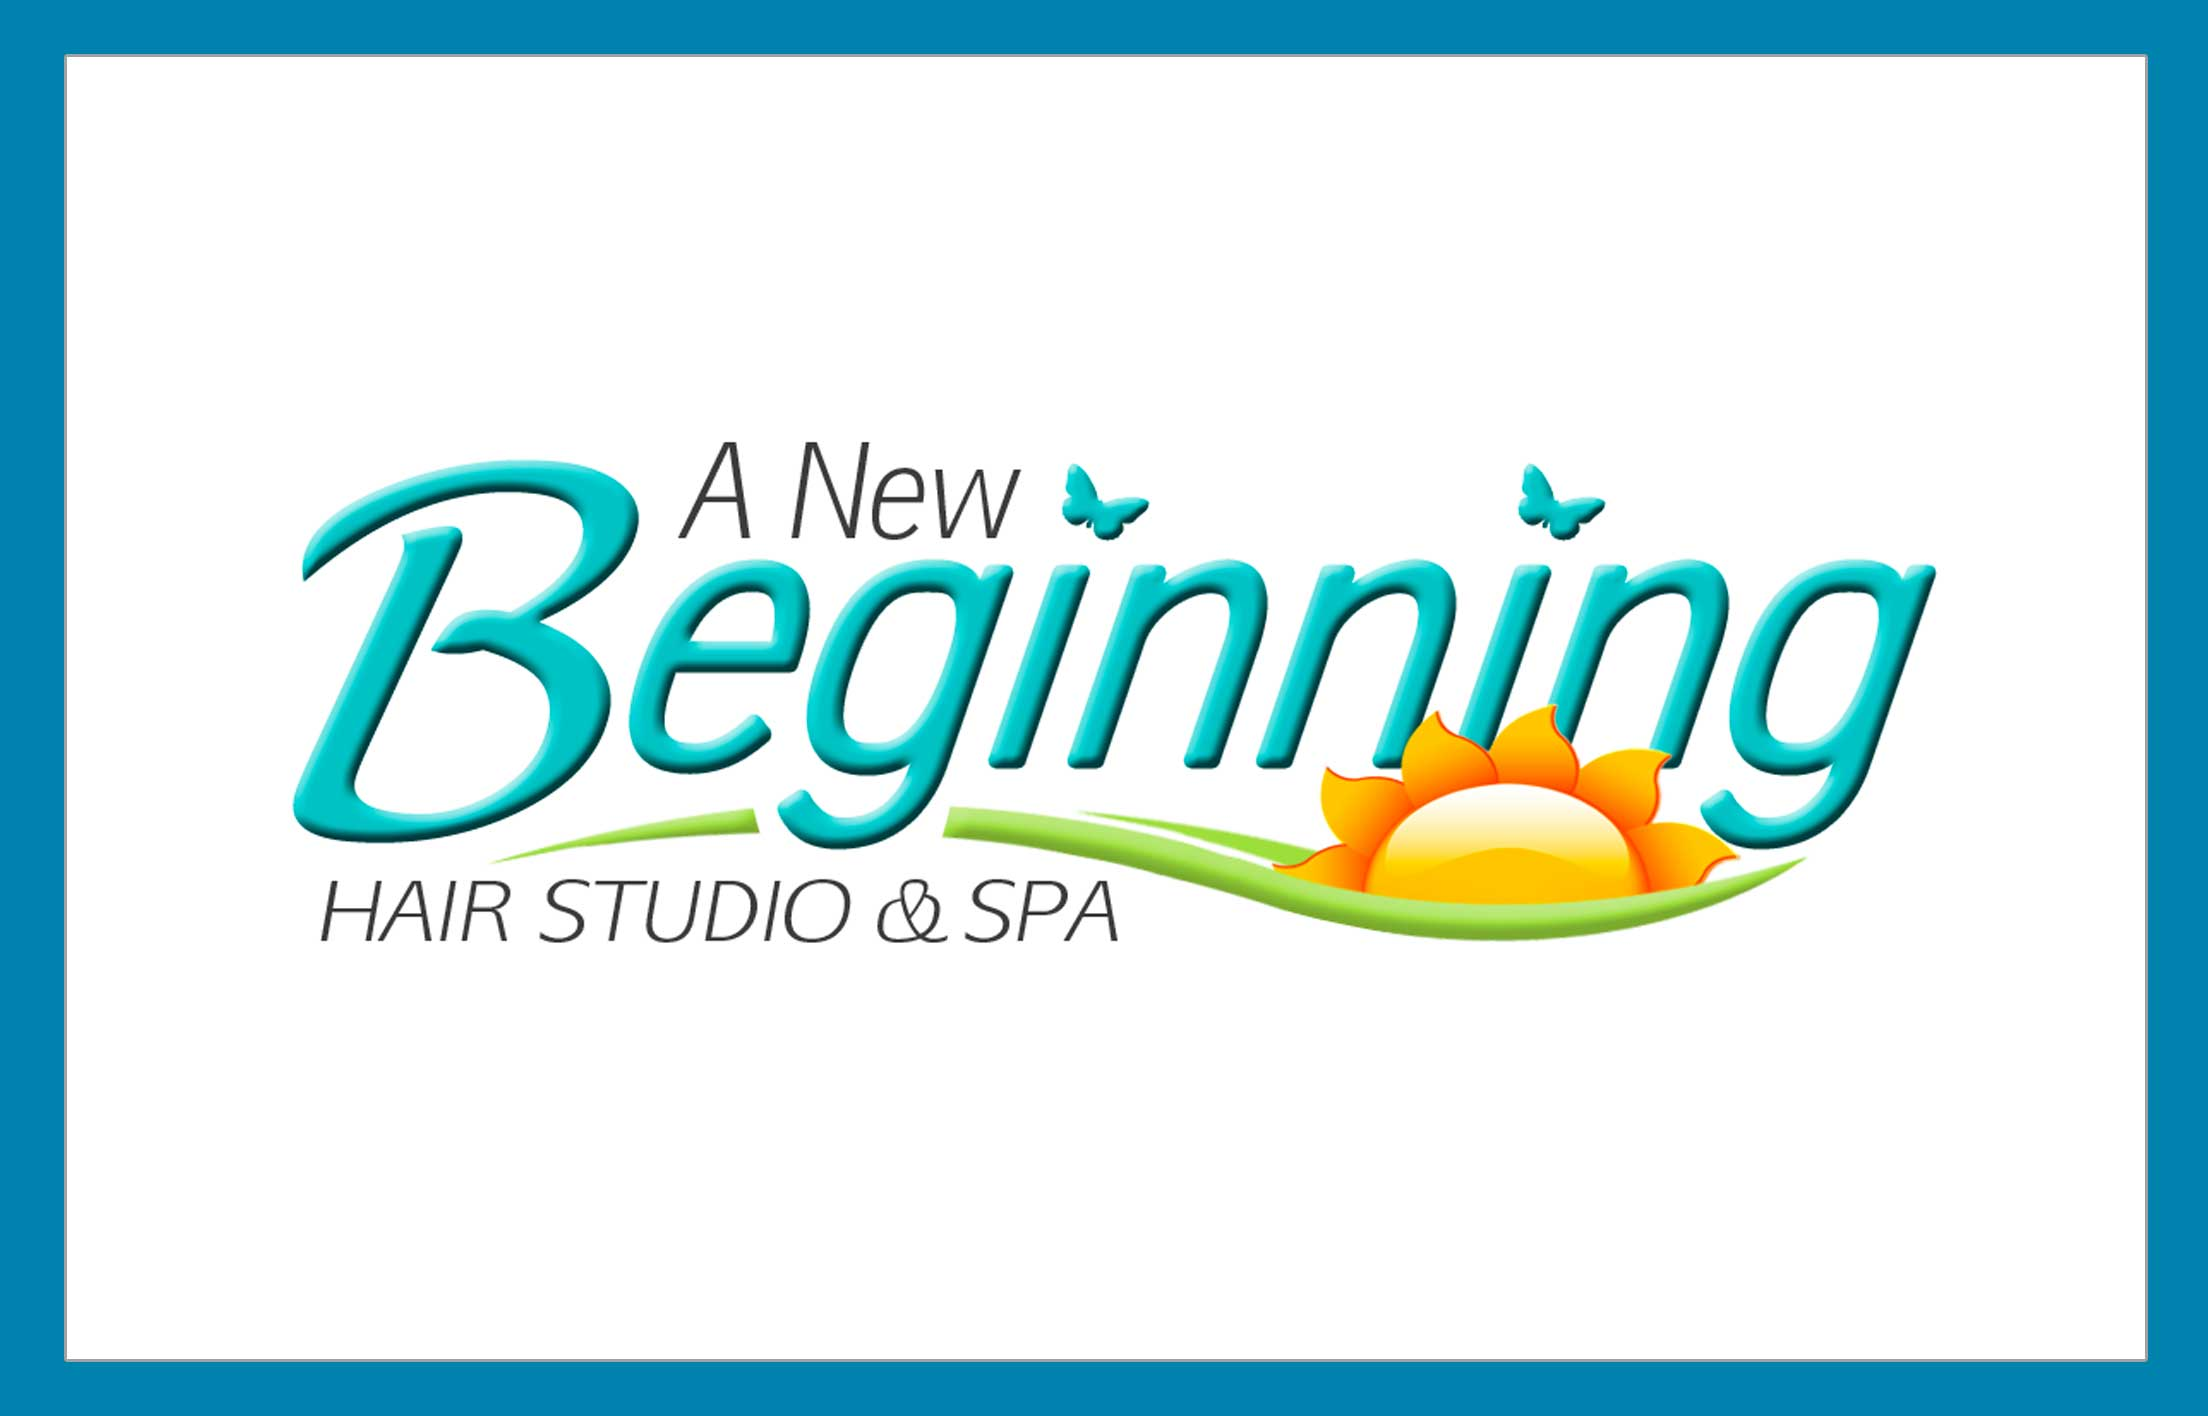 Our work right eye graphics for A new beginning salon